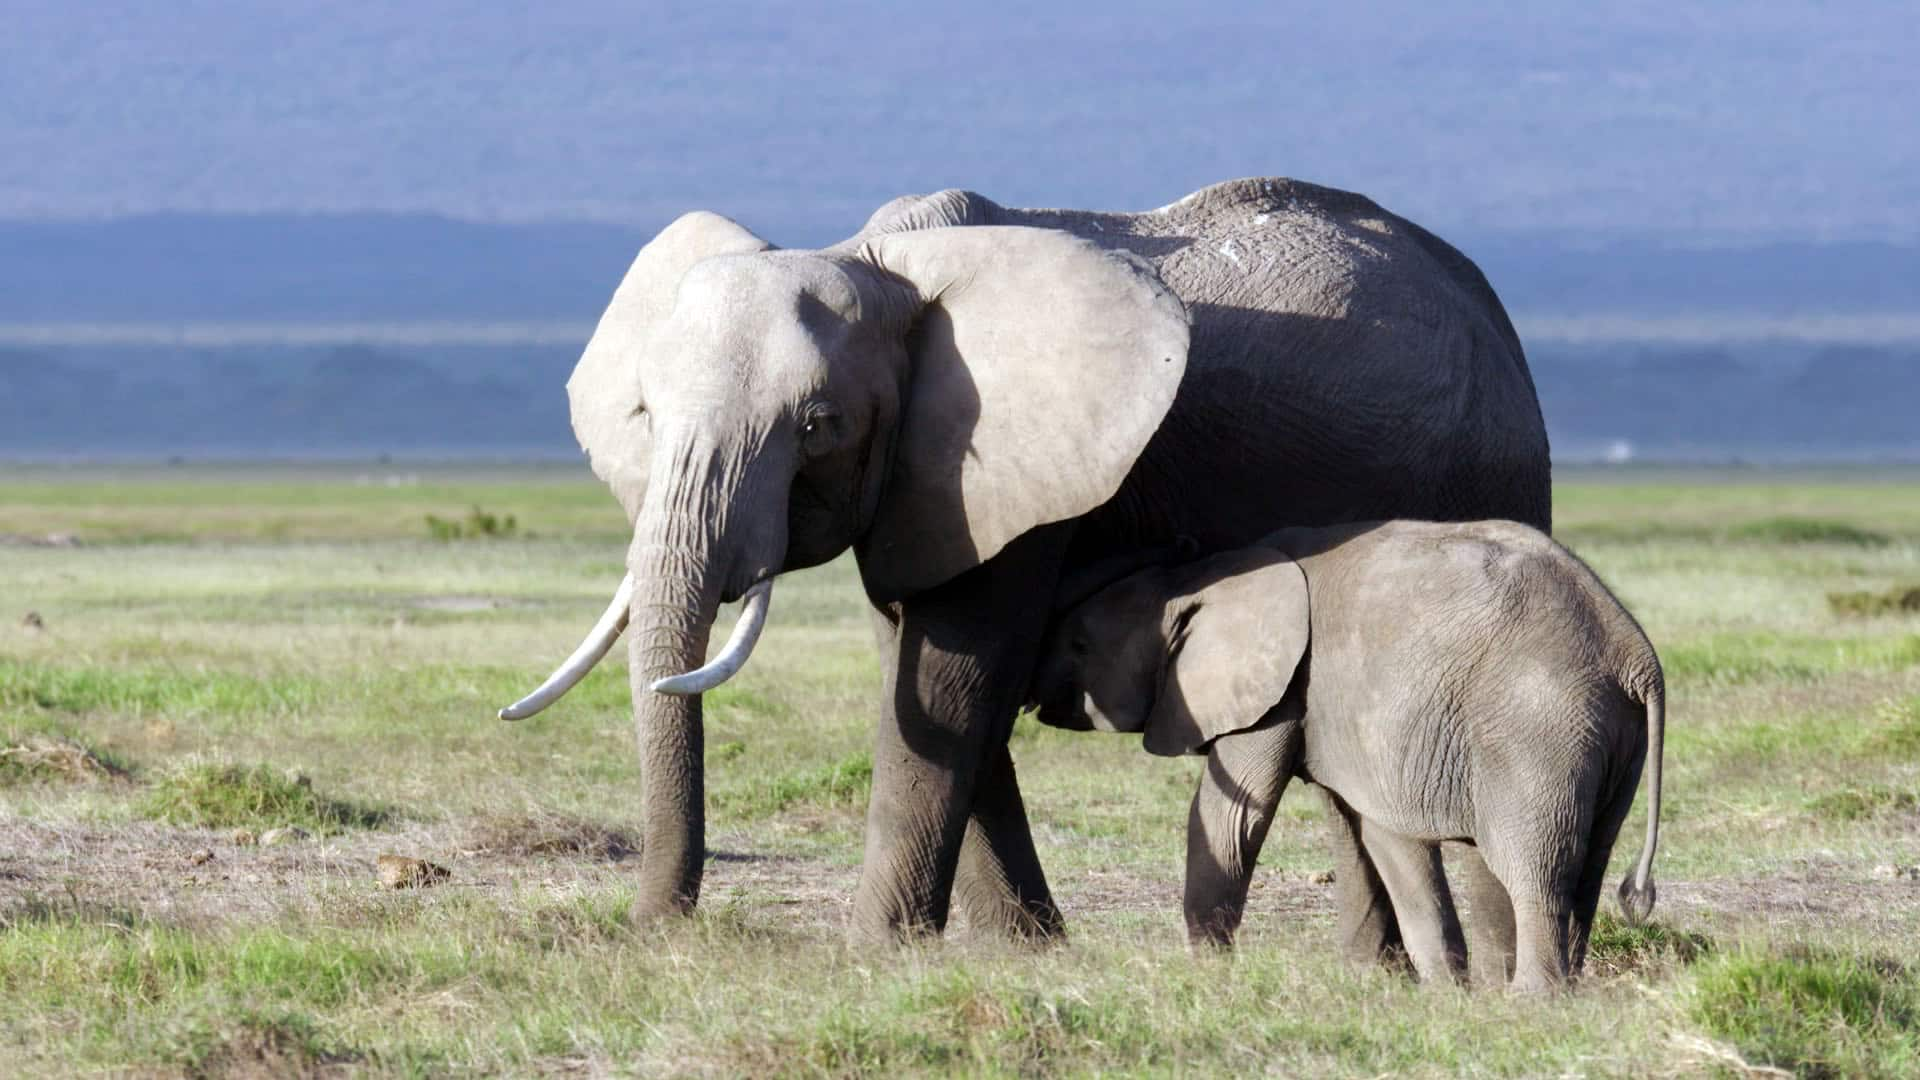 New research shows that elephants and other animals can suffer from PTSD